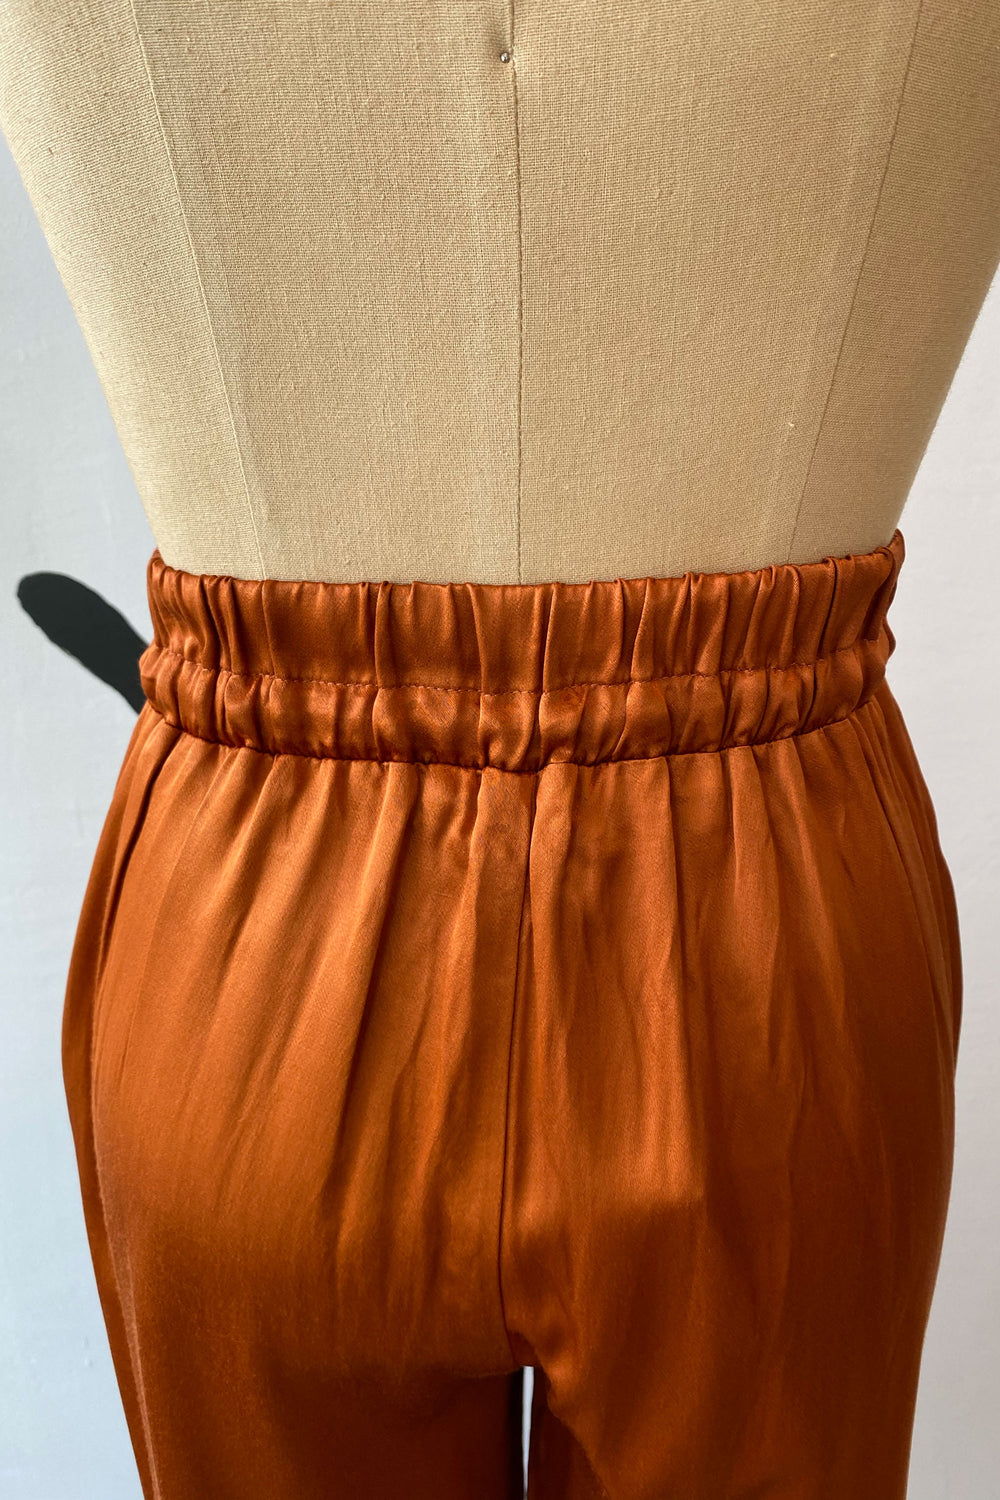 Sample Sale Norah Pants in Shiny Rust - Whimsy & Row